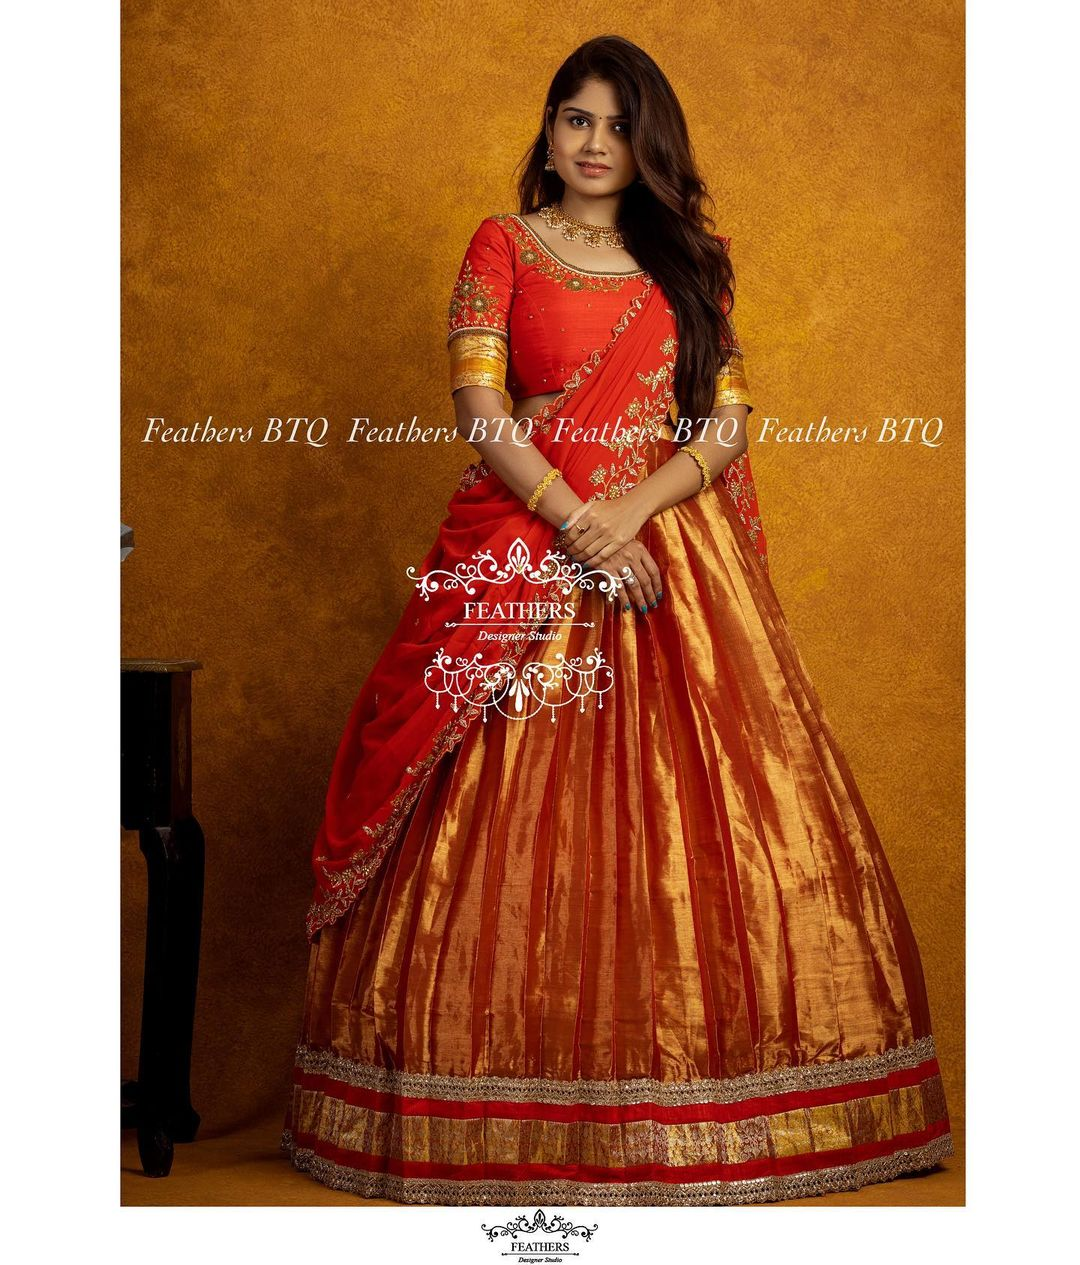 Stunning gold pattu lehenga and red blouse with net dupatta. Blouse with hand embroidery maggam work. Dupatta with cut work. 2021-09-22